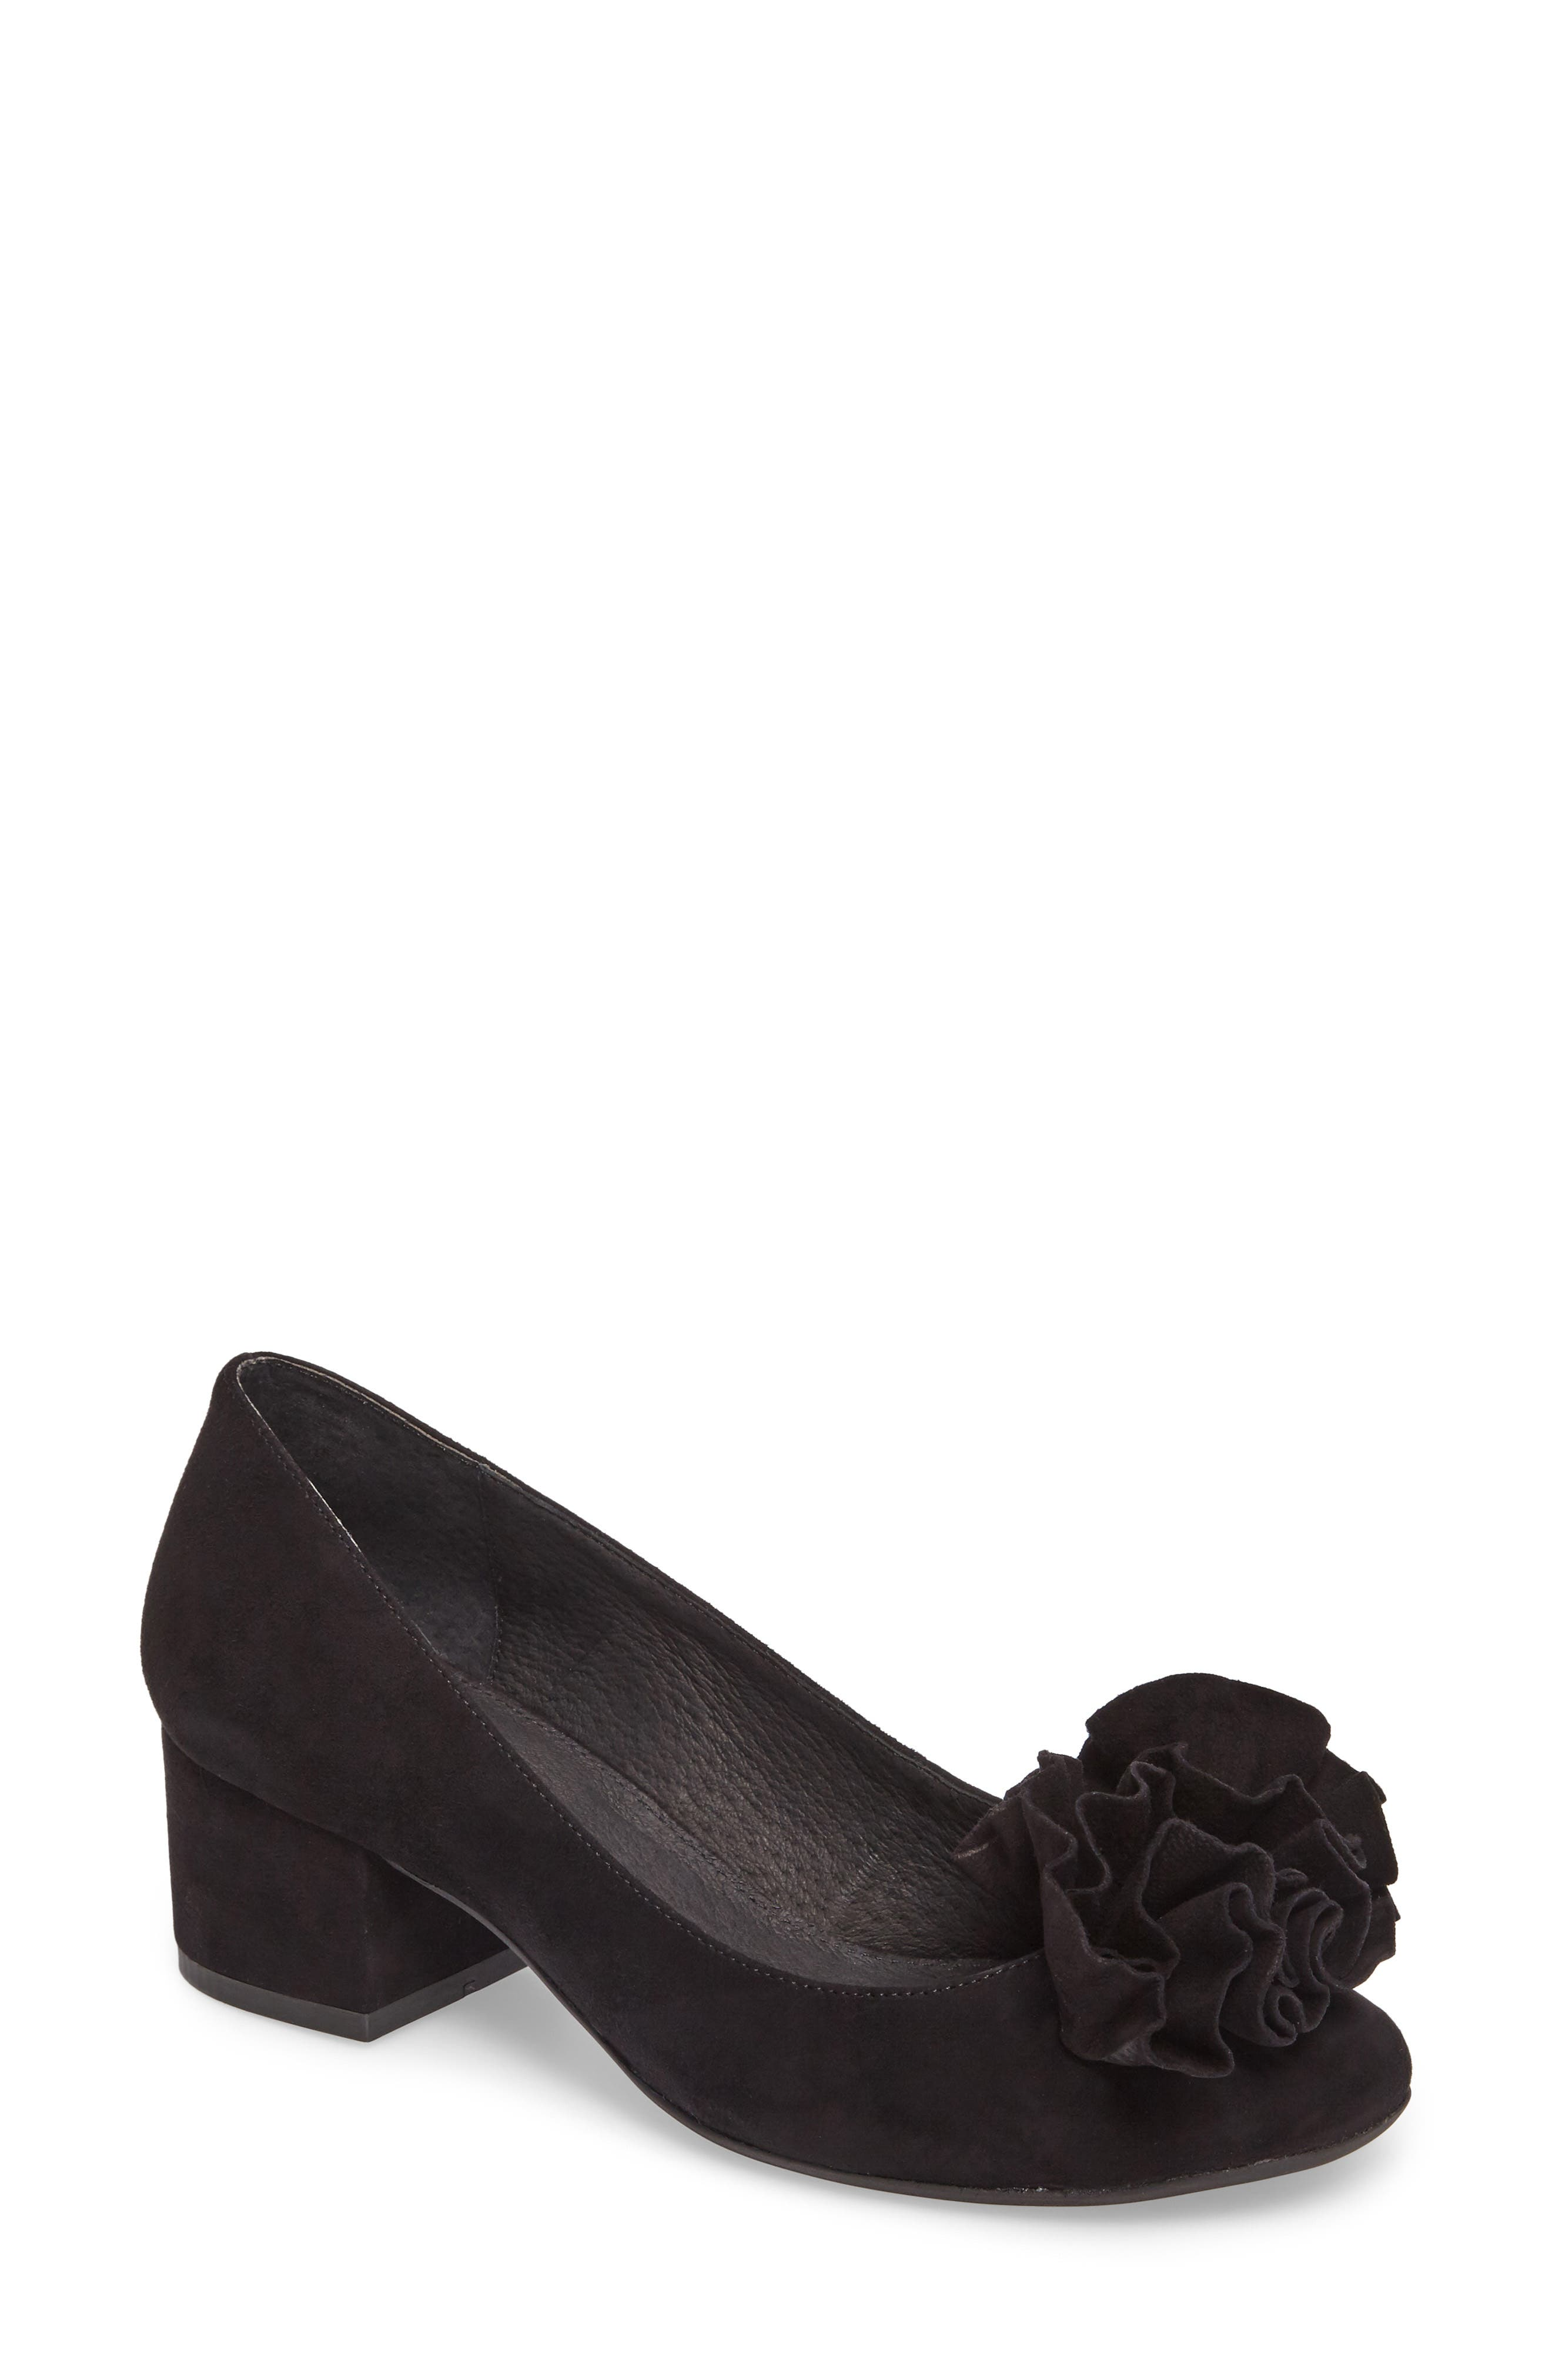 Lilly Pump,                         Main,                         color, Black Suede